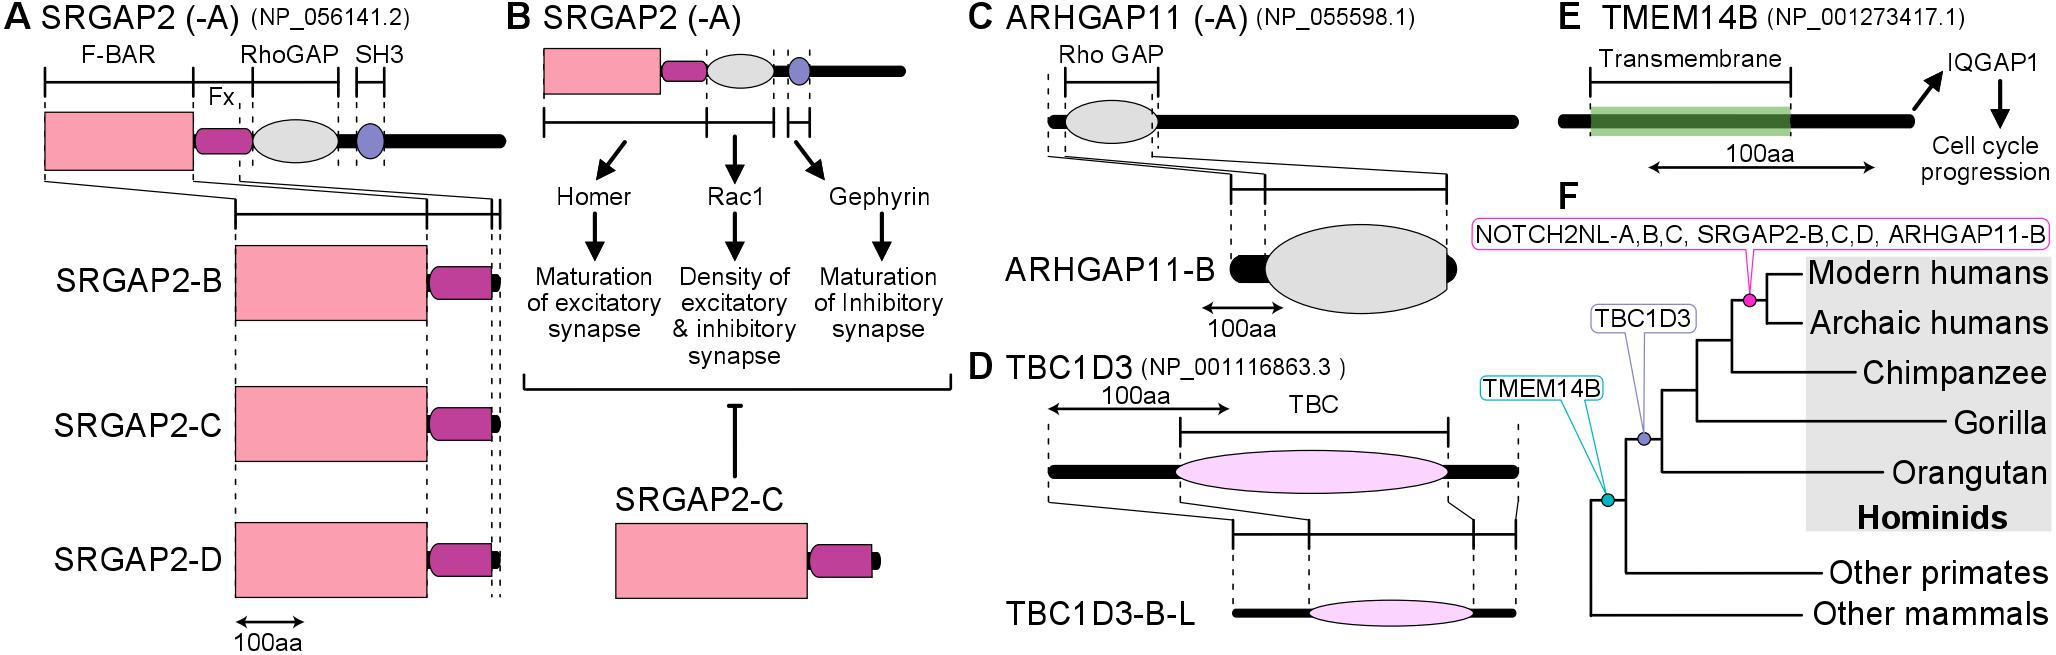 Figure 2. (A) Protein structures of SRGAP2-family genes. (B) Proposed molecular mechanism of SRGAP2 (-A) and SRGAP2-C. (C) Protein structures of ARHGAP11-family genes. (D) Protein structures of TBC1D3-family genes. (E) Protein structures of TMEM14B-family genes and its proposed molecular function. (F) The evolutionary timing of the emergence of human/hominid lineage-specific genes.